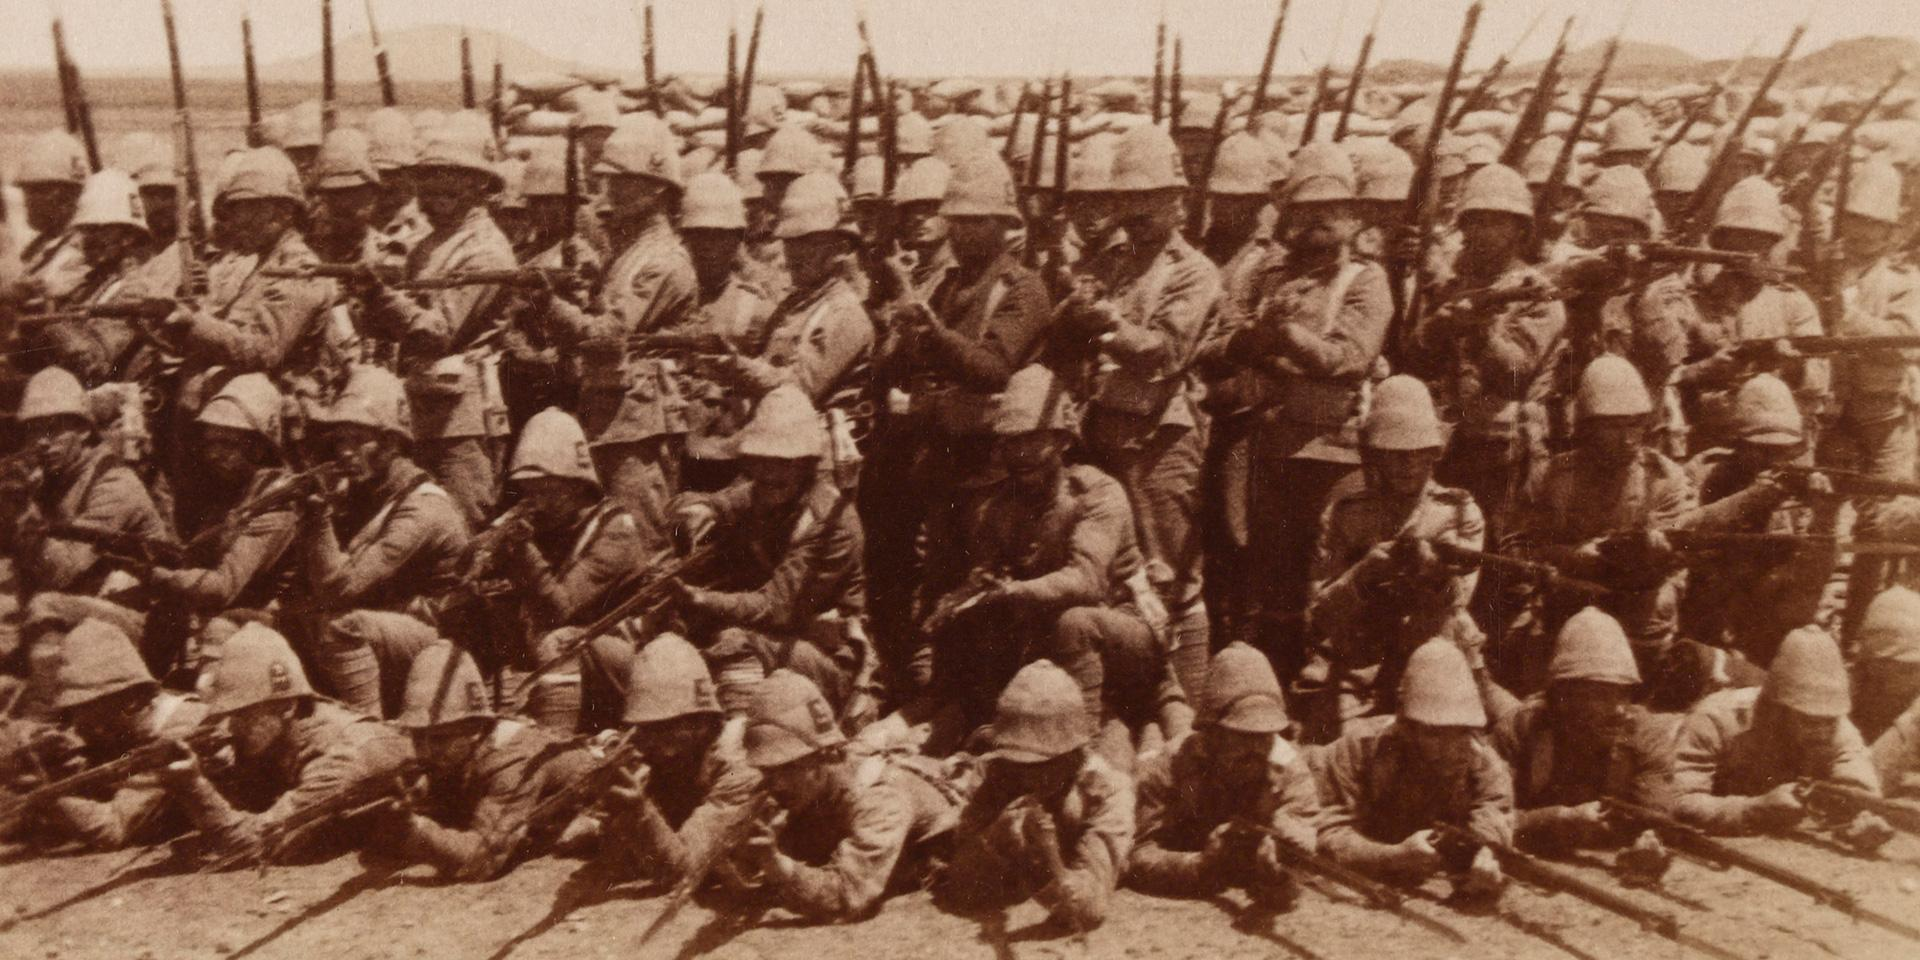 'Royal Munster Fusiliers - a bristling British Front-Boer War, South Africa', 1899 (c)